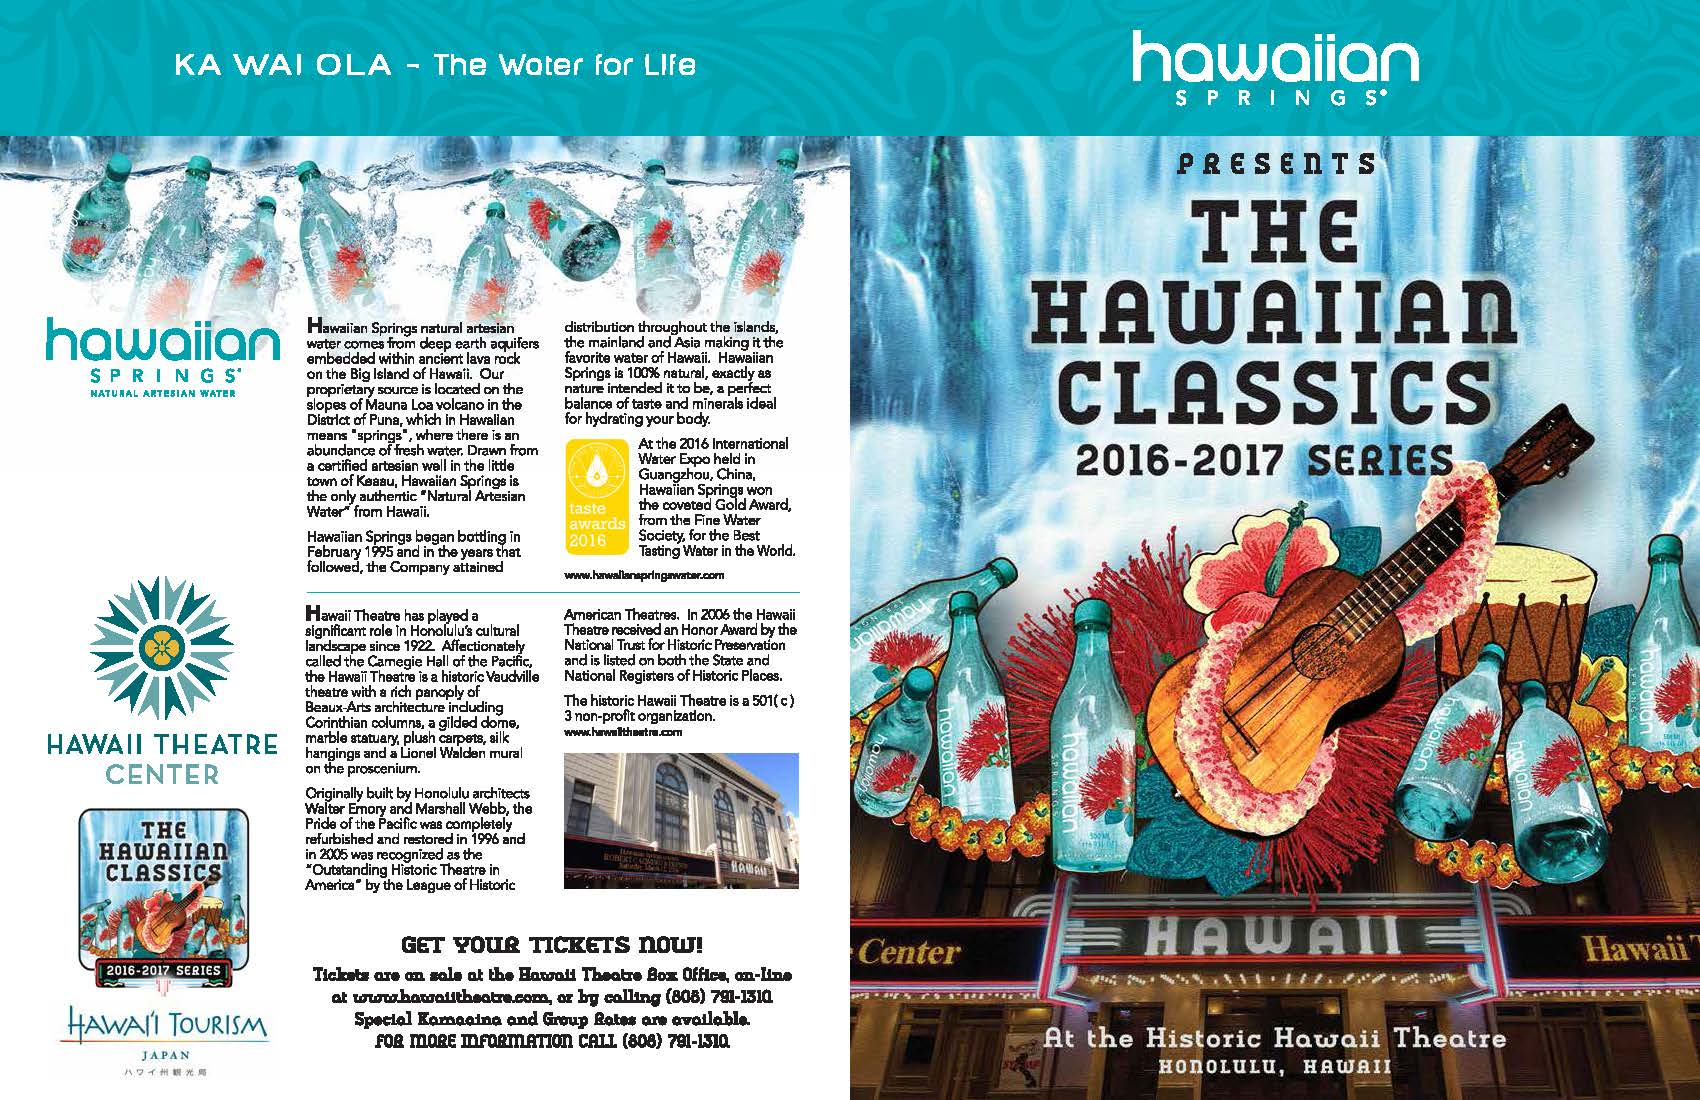 The Hawaiian Classics at the Hawaii Theatre